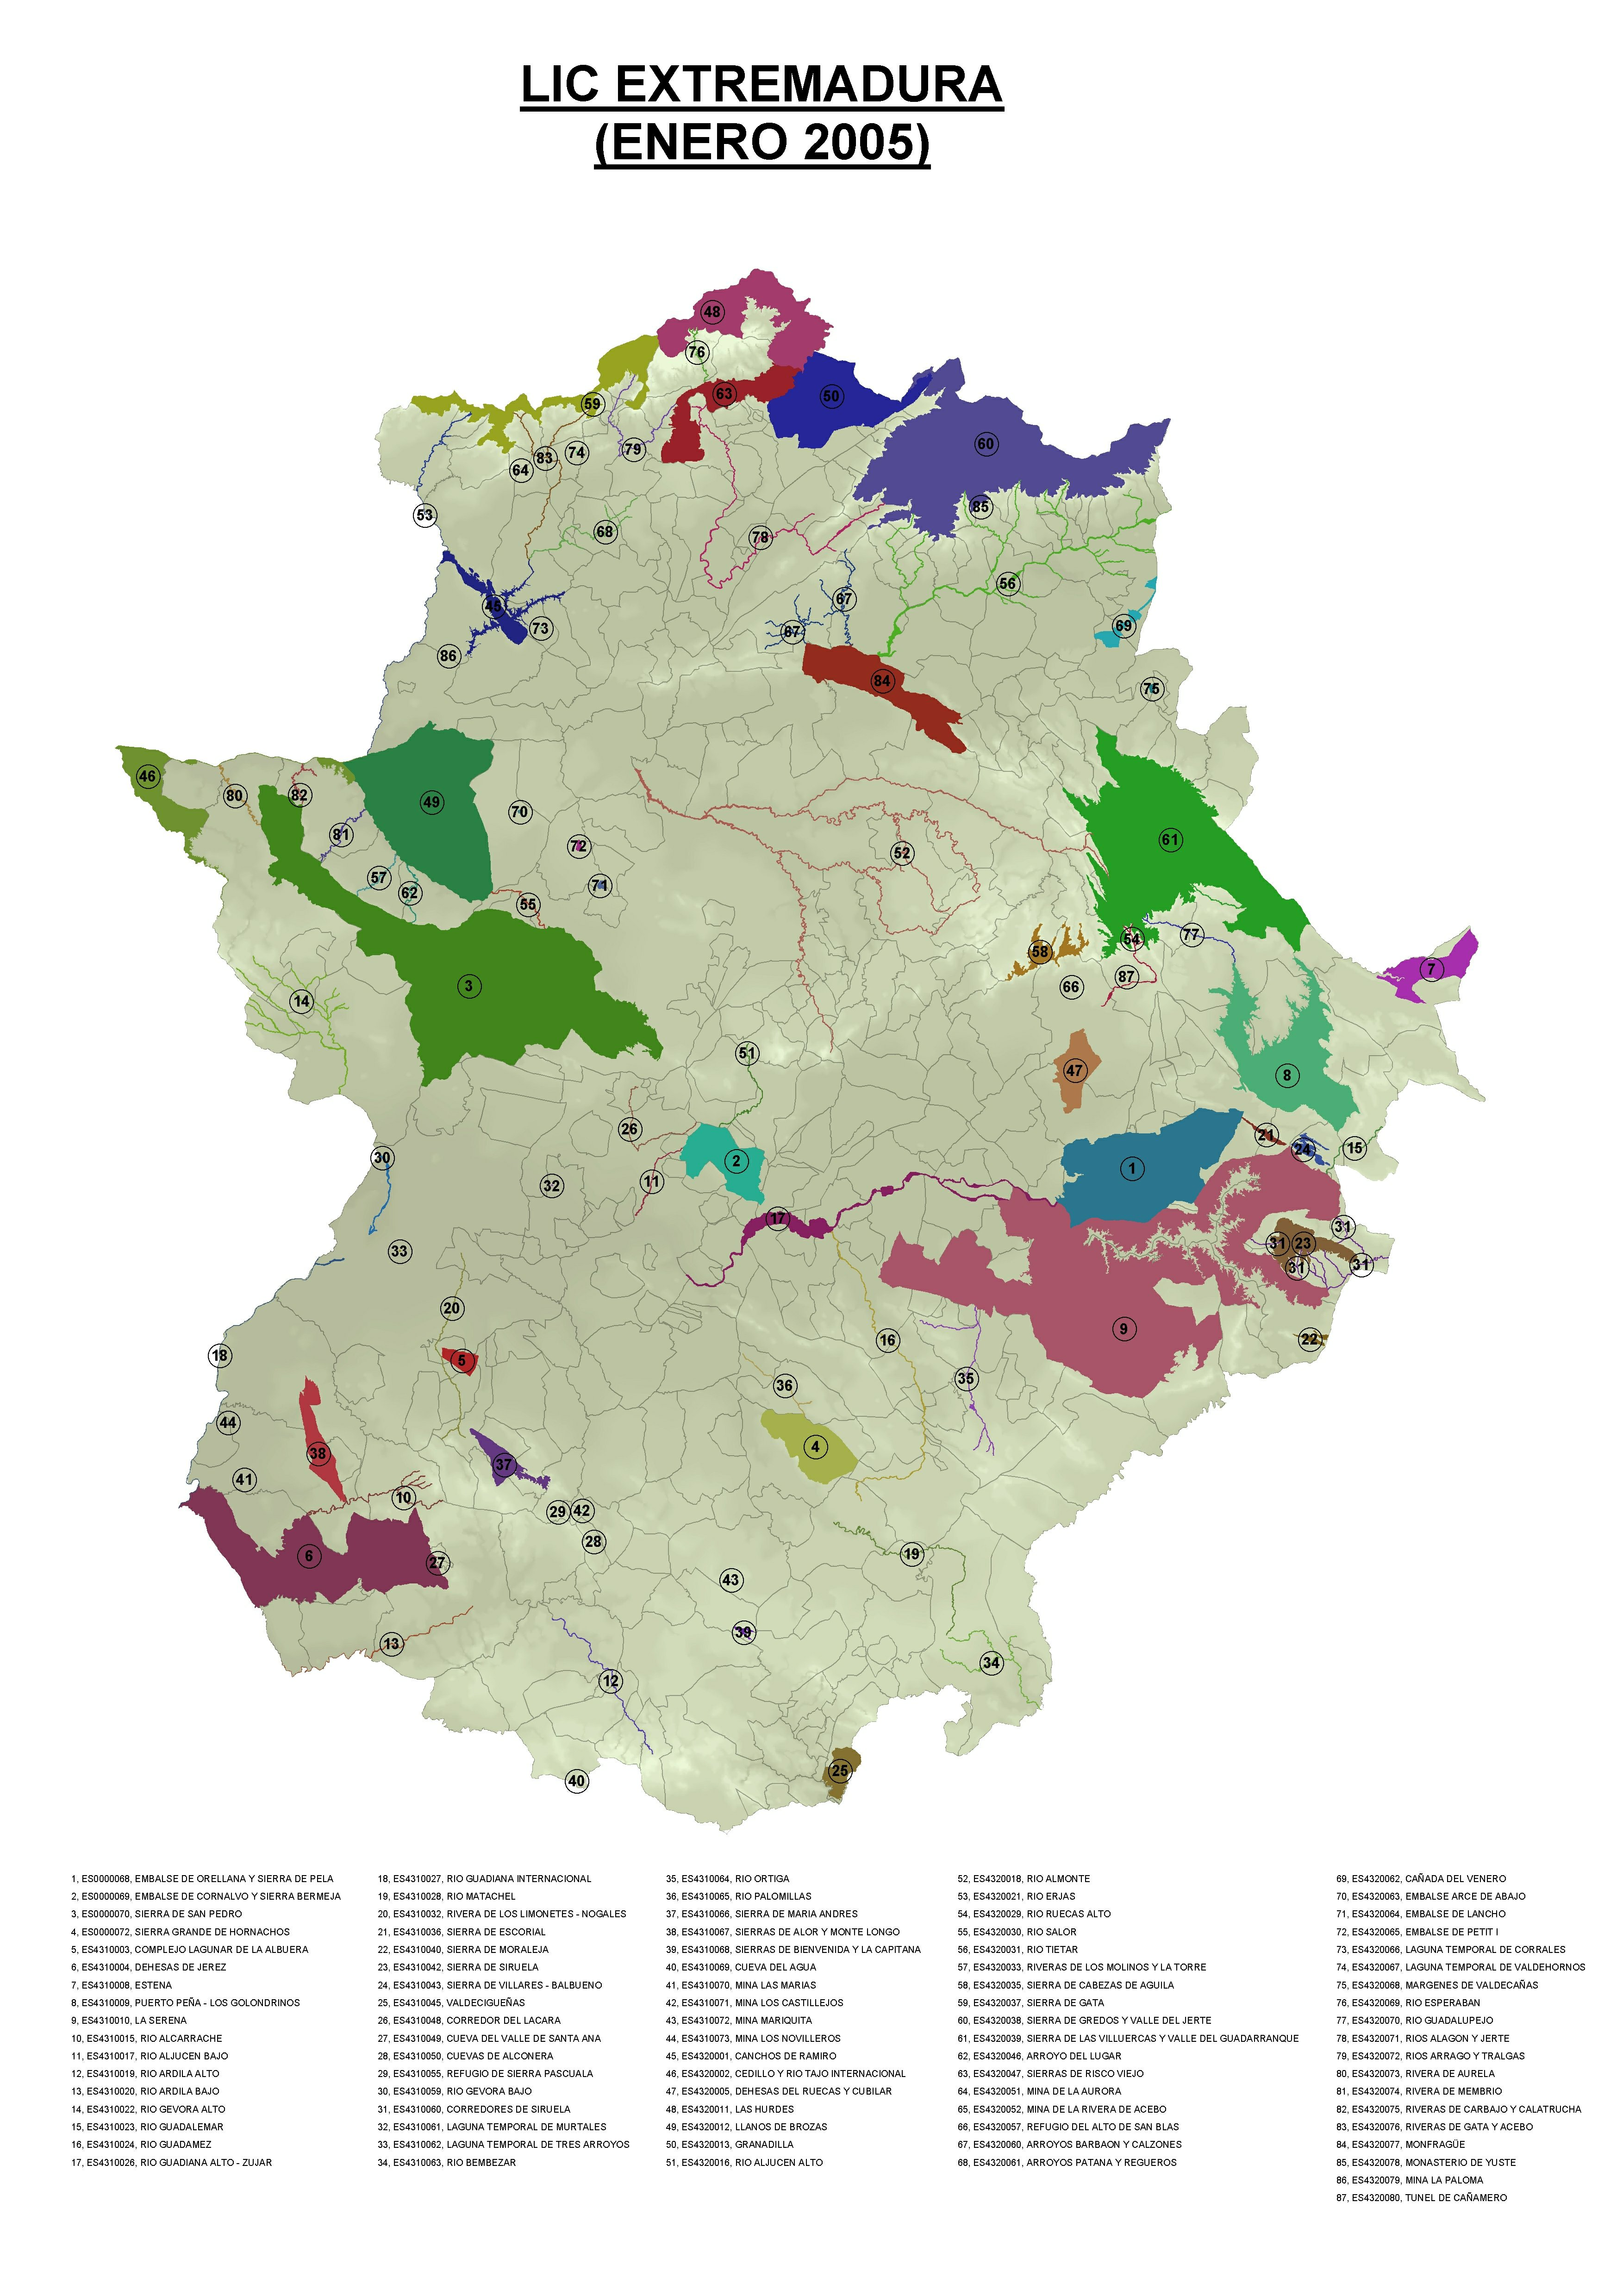 Community sites of importance of Extremadura